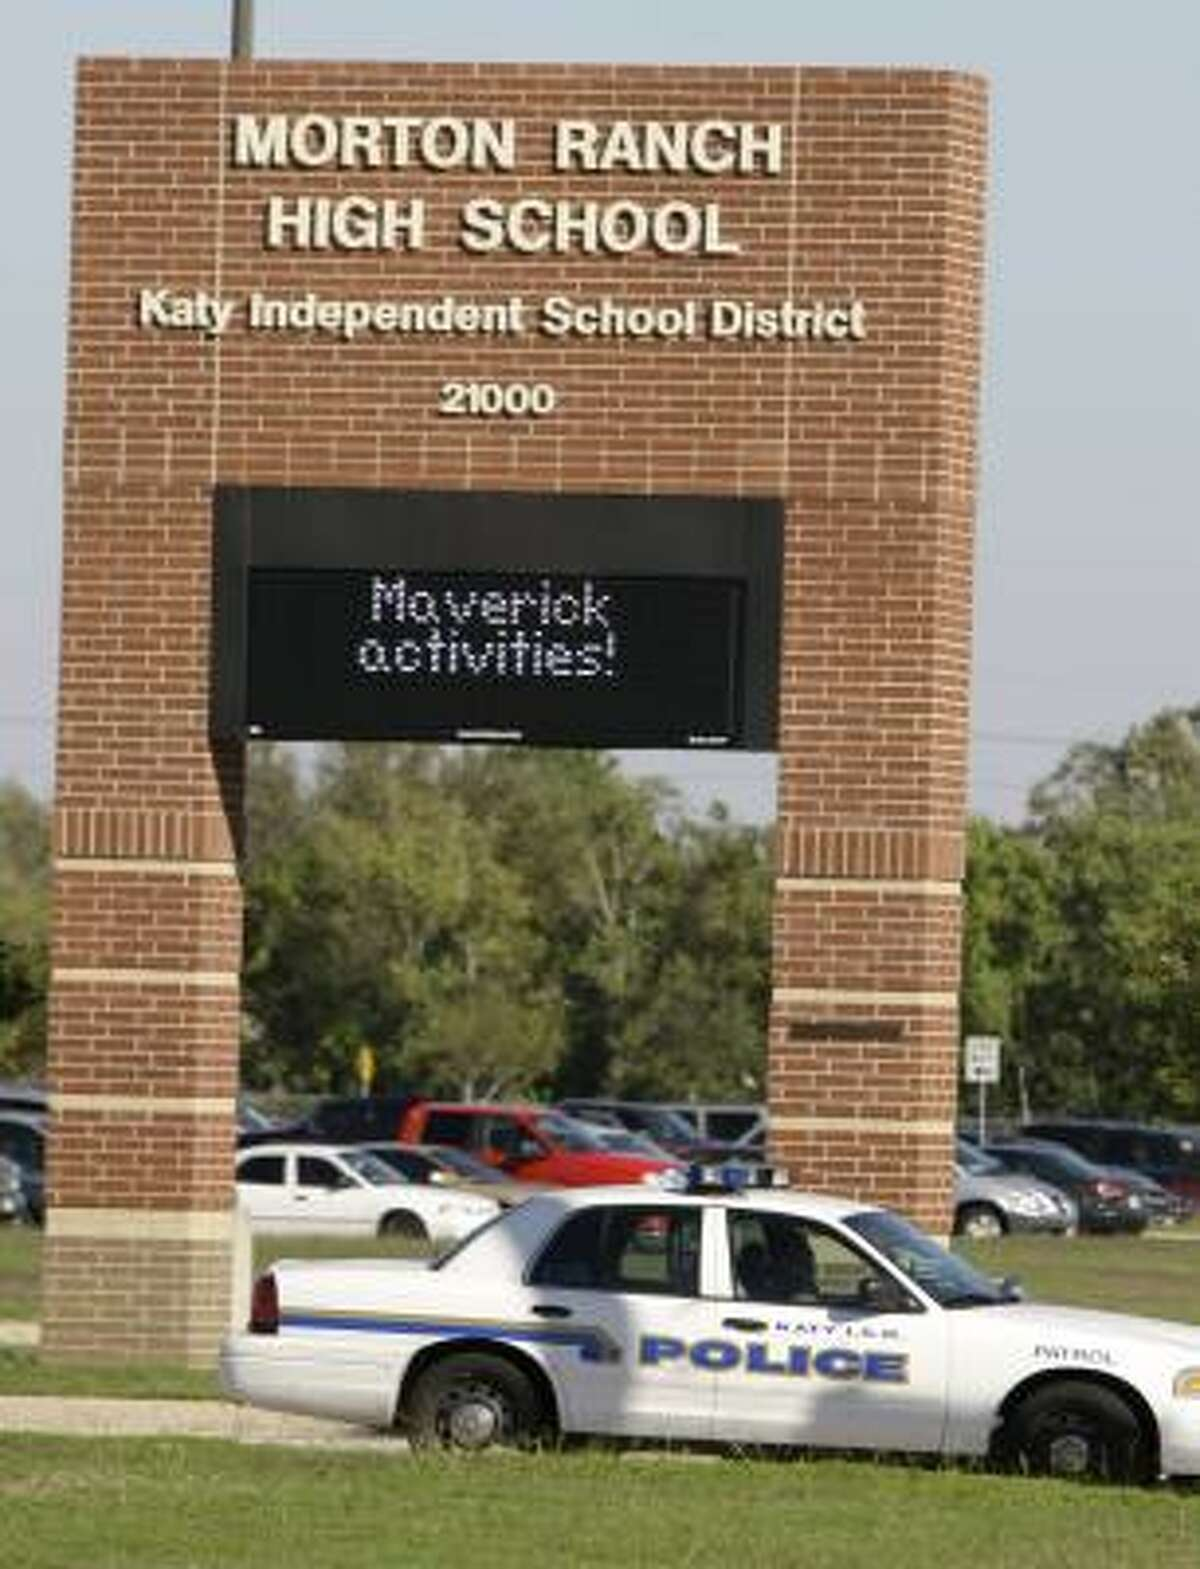 Lawyers for some of the indicted cheerleaders at Morton Ranch High School say the indictments are an overreaction.